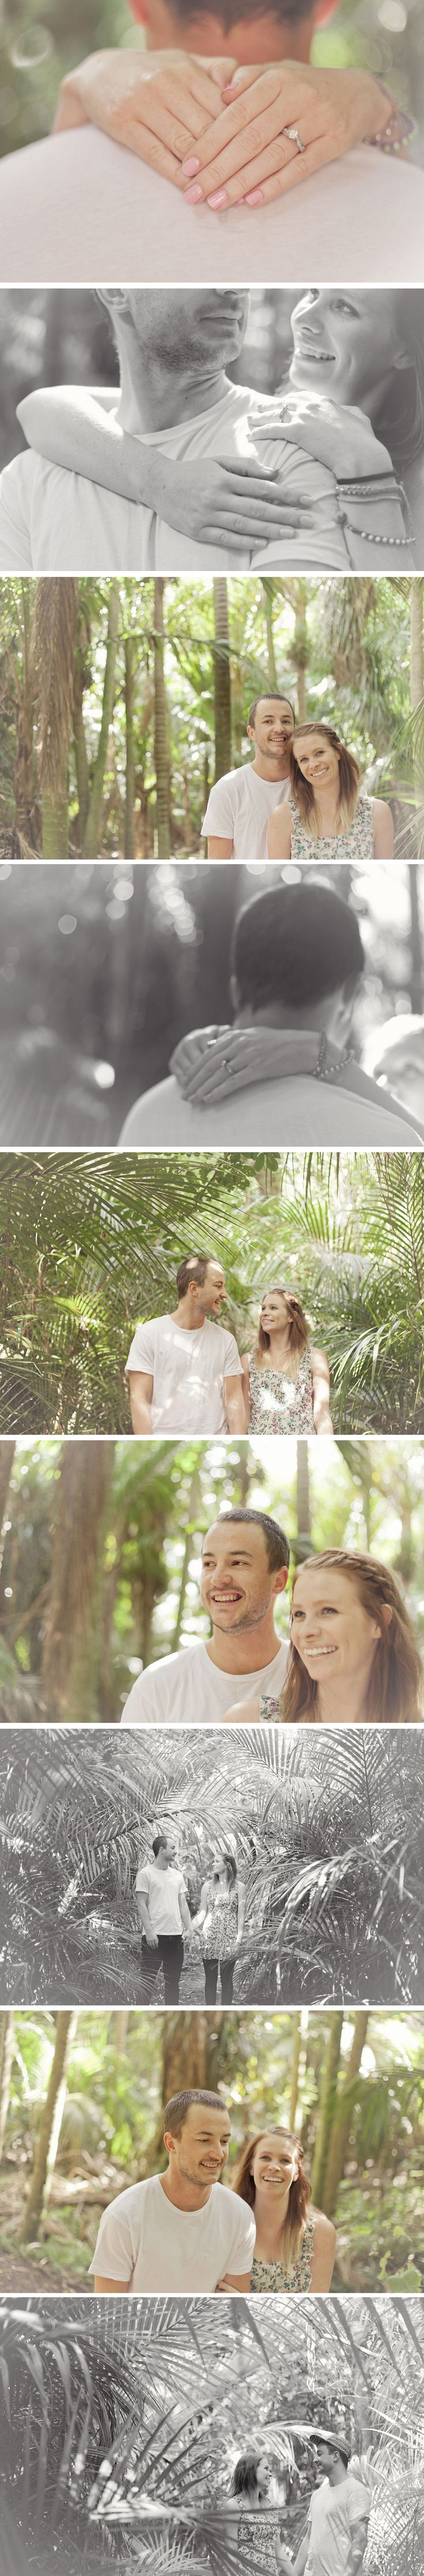 Palm tree heaven - Engagement photography Wellington - Jenny siaosi photography